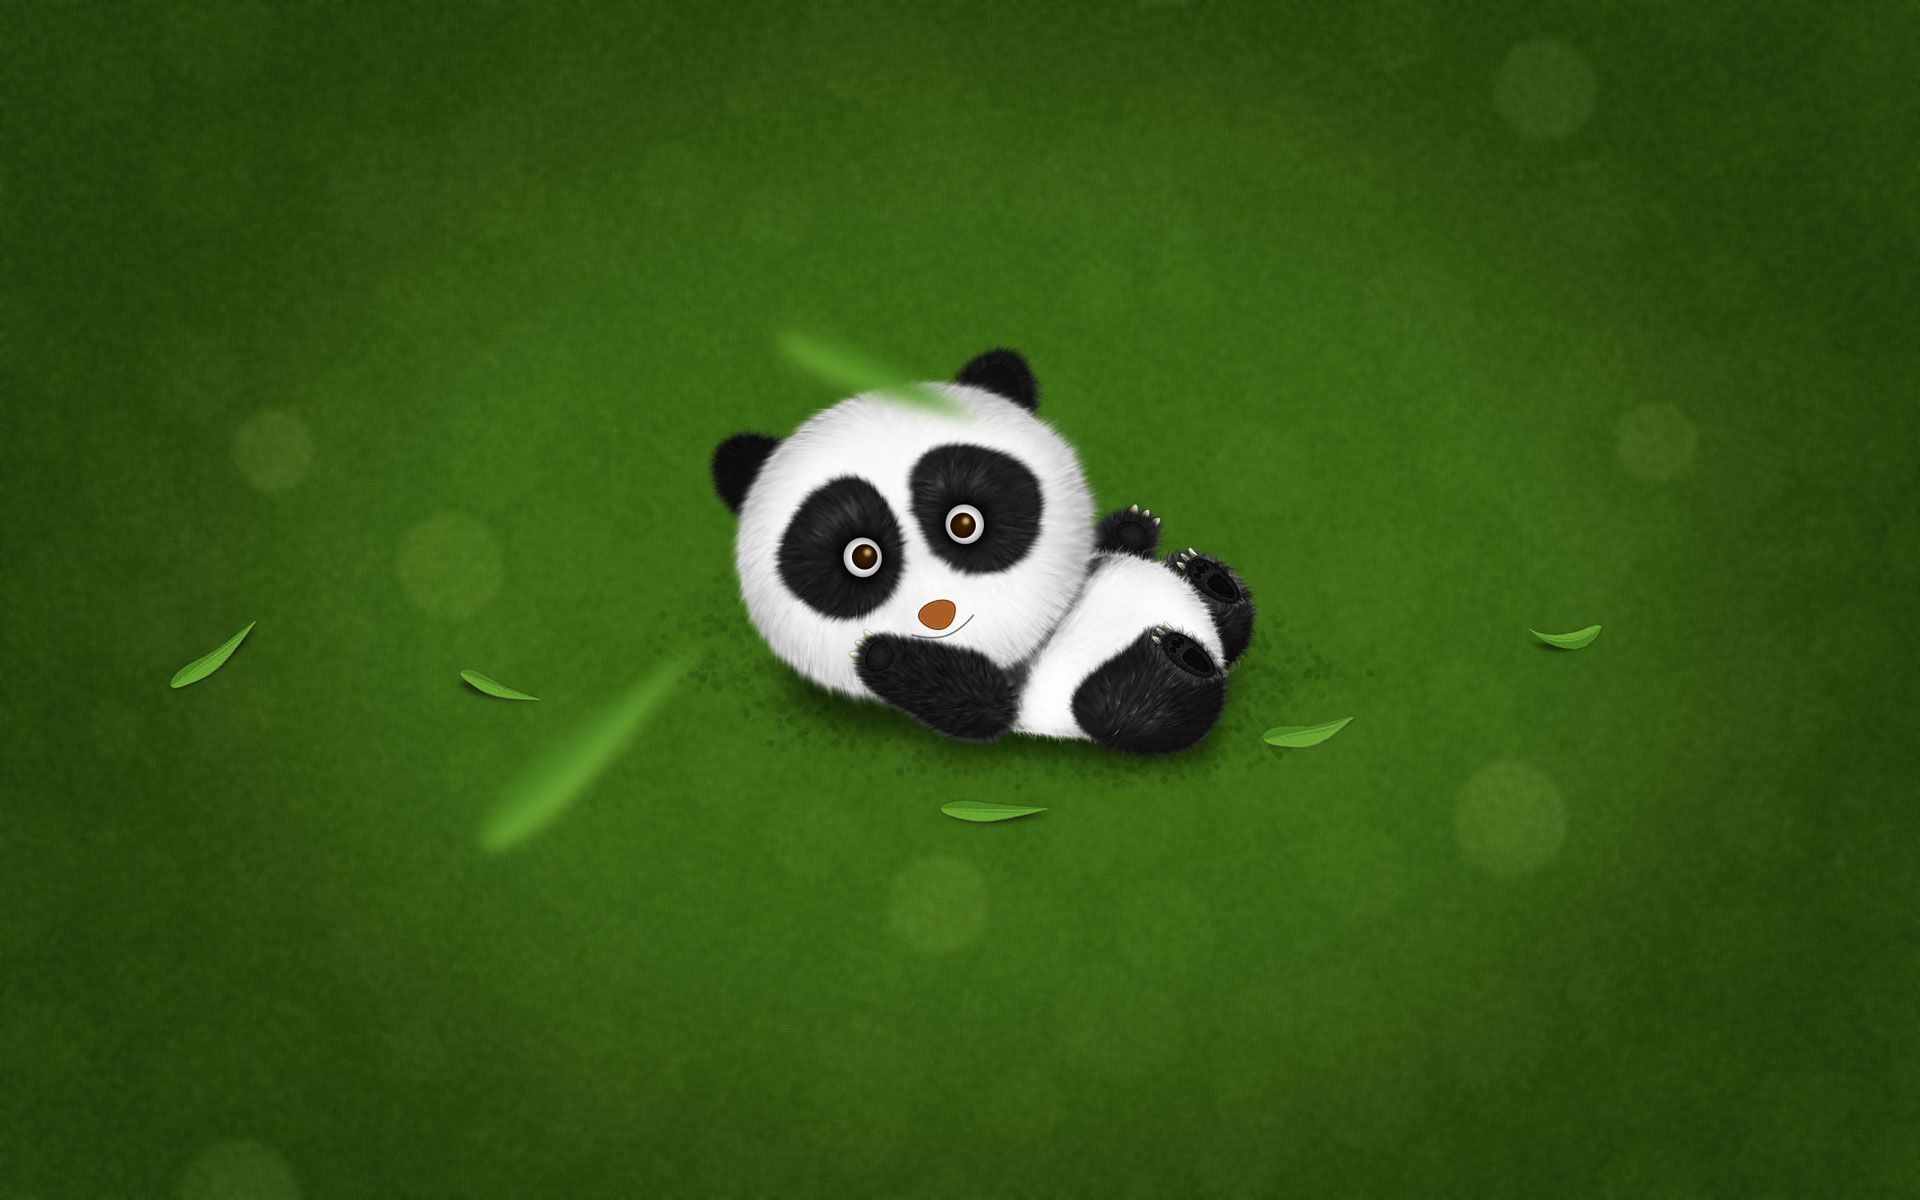 Cute Panda Wallpapers Android Apps On Google Play 1920x1200